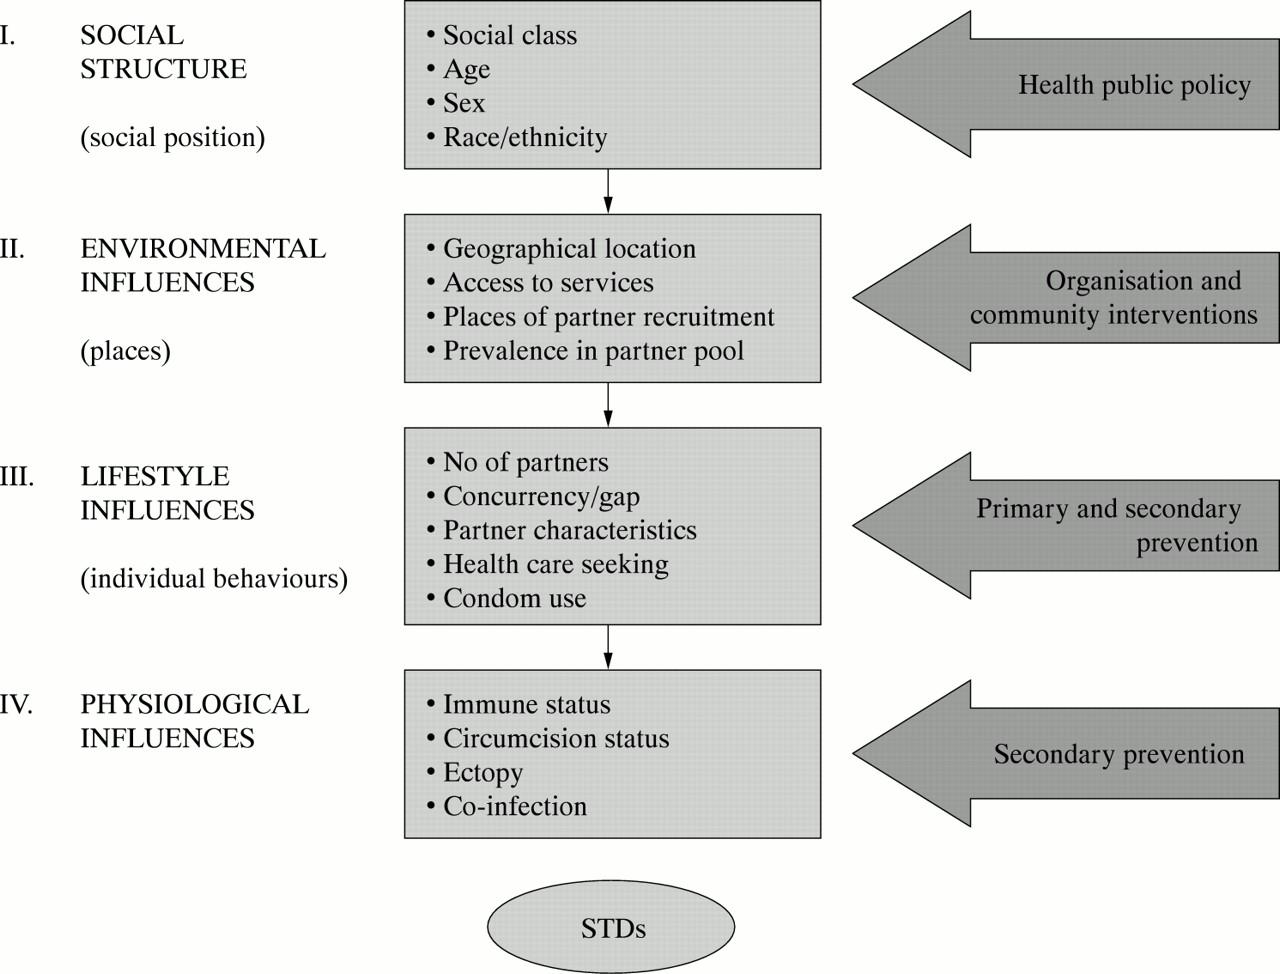 Social deseases contracted by sex